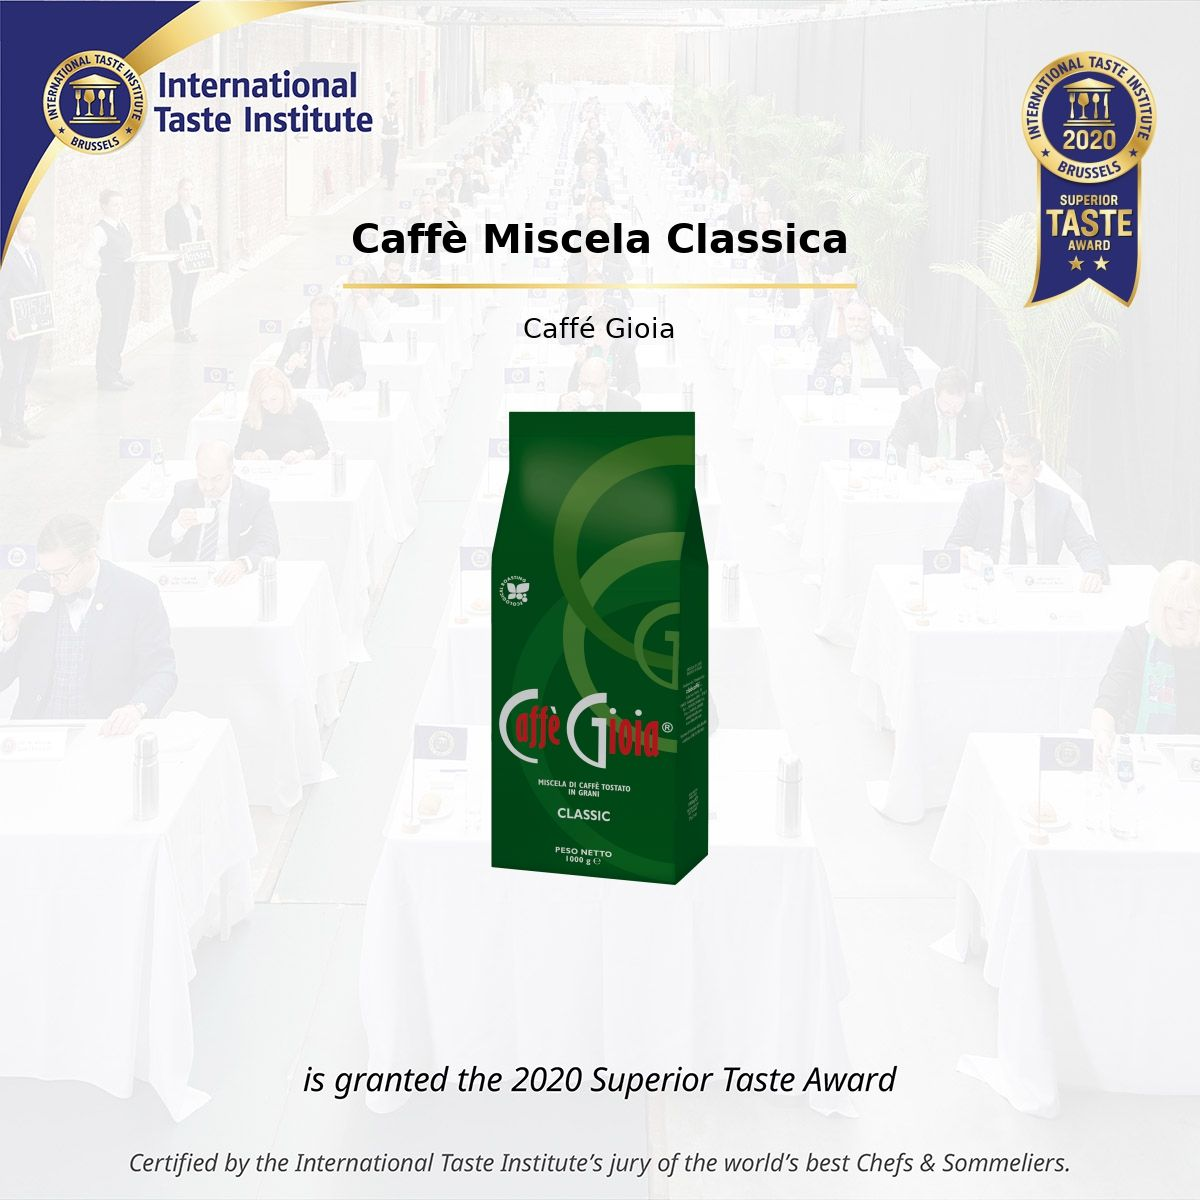 SUPERIOR TAST AWARD